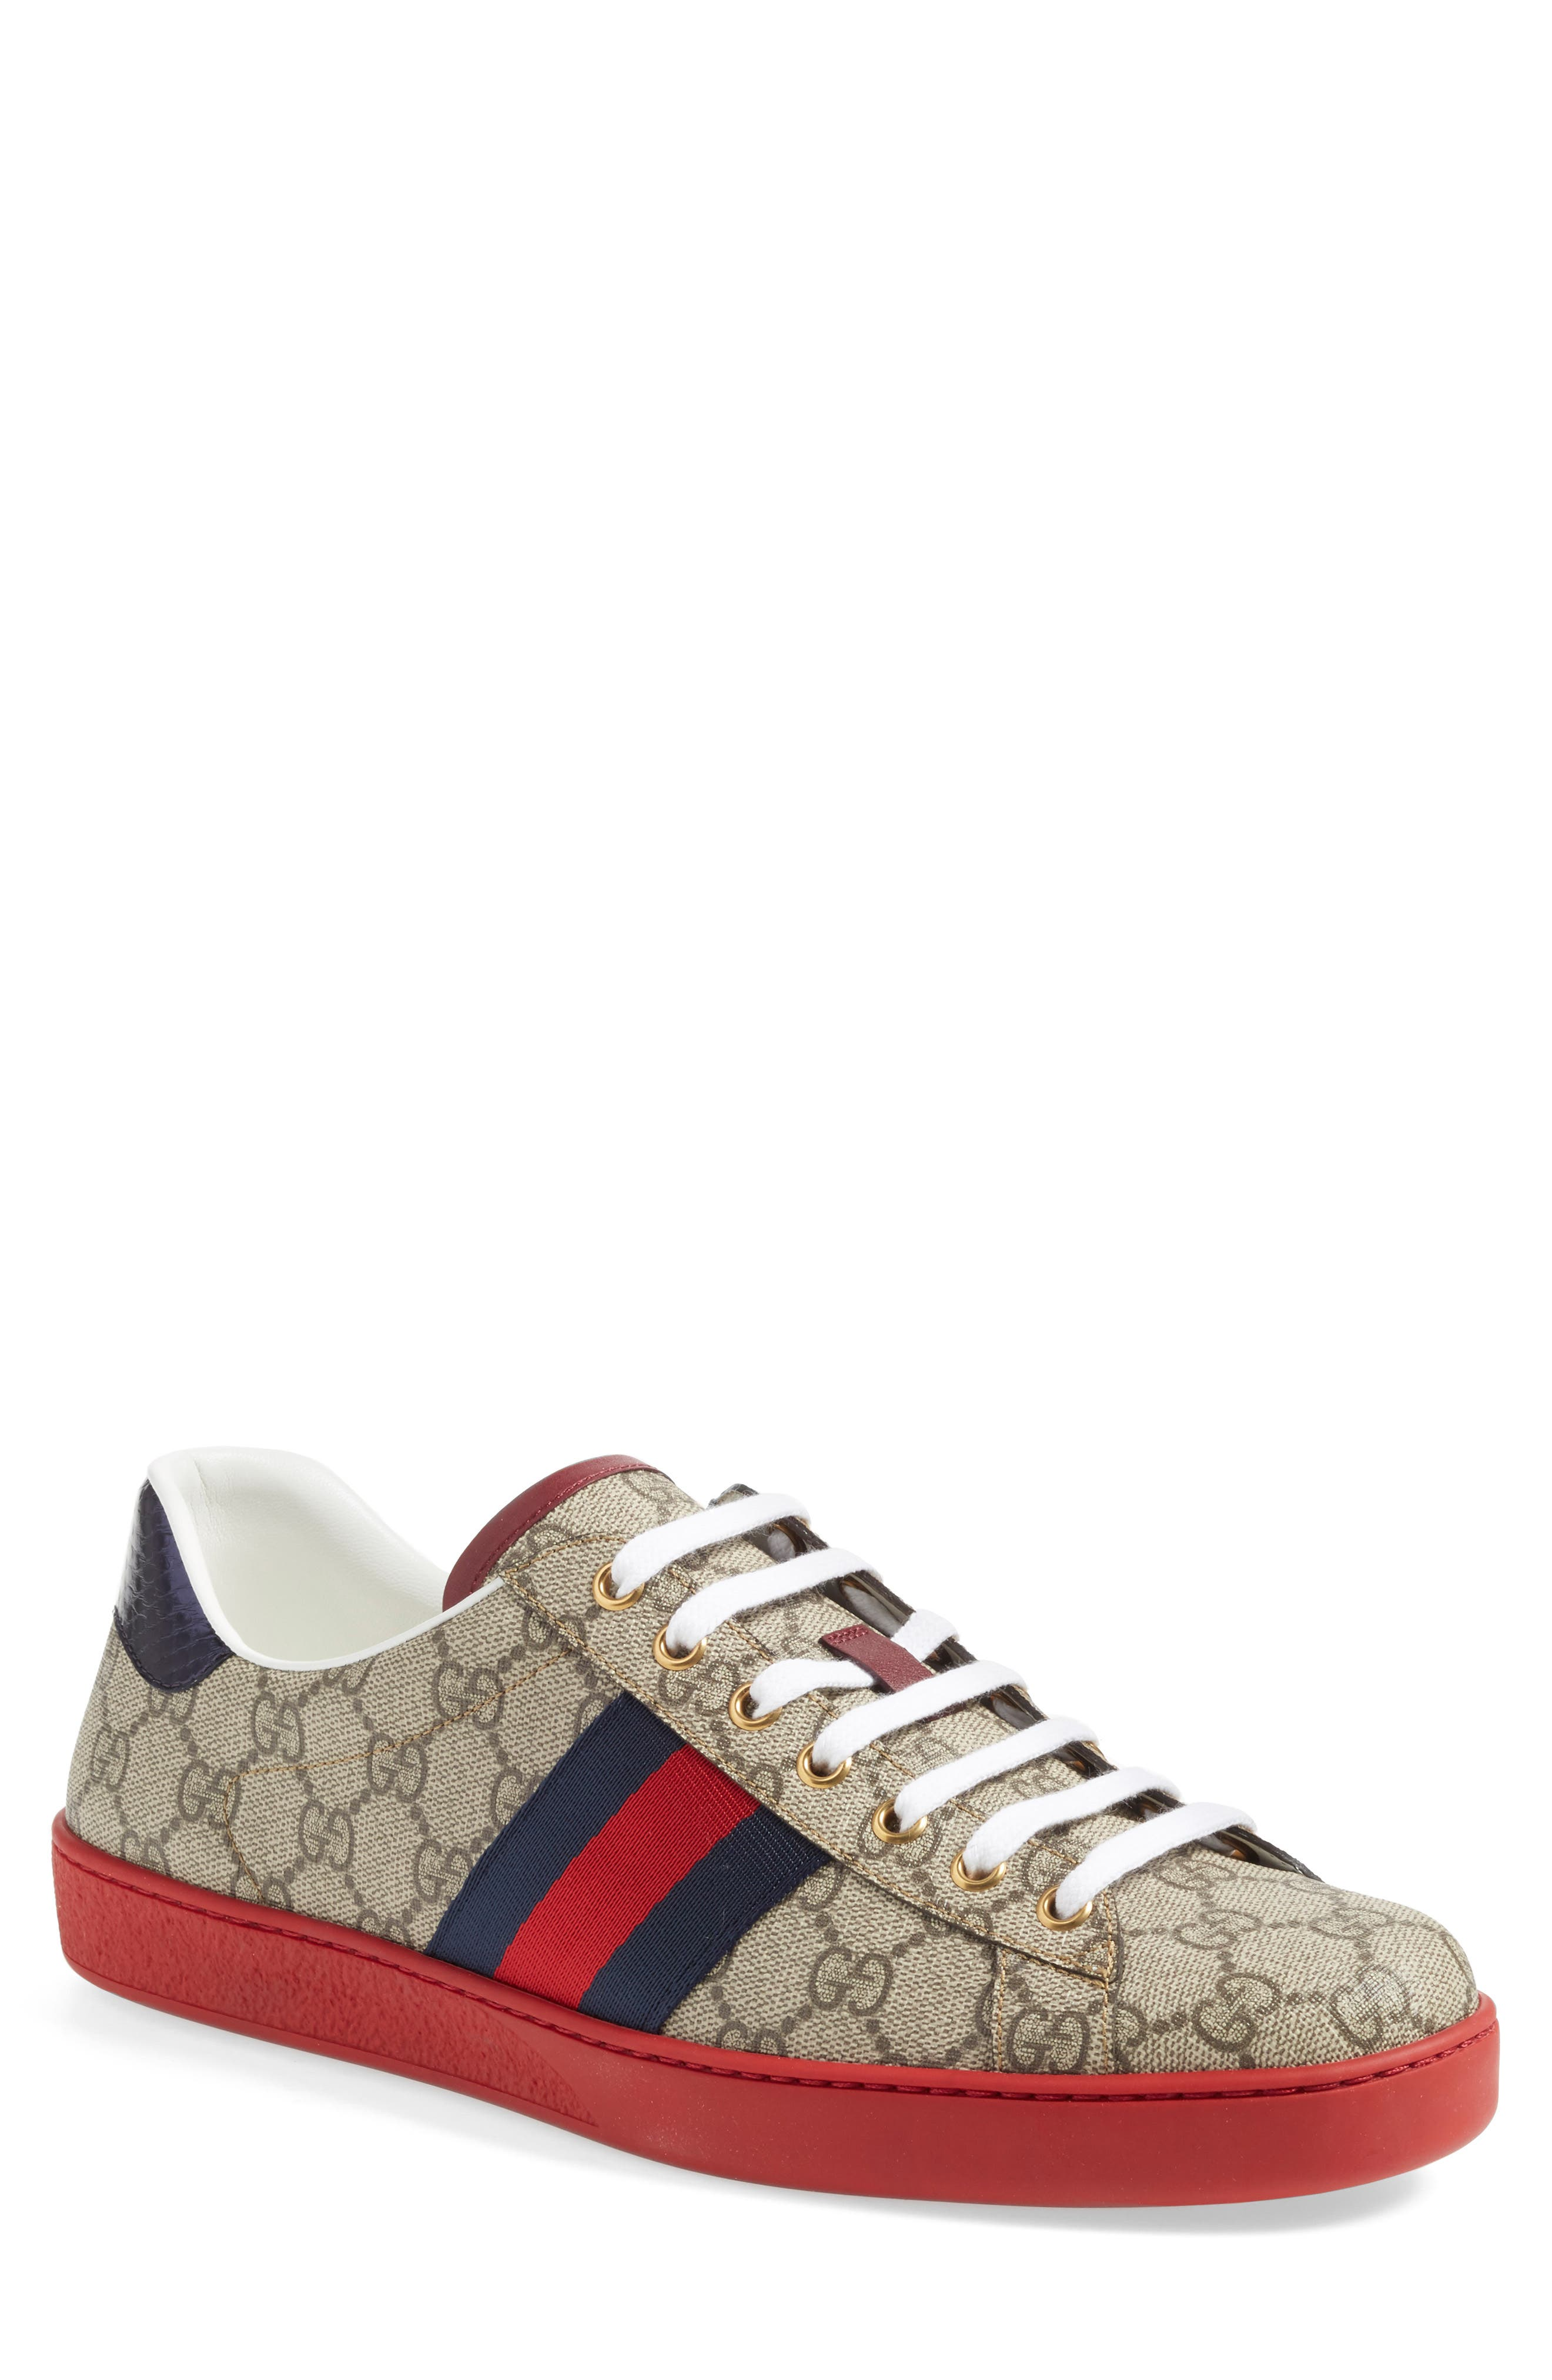 GUCCI, New Ace Webbed Low Top Sneaker, Main thumbnail 1, color, BEIGE